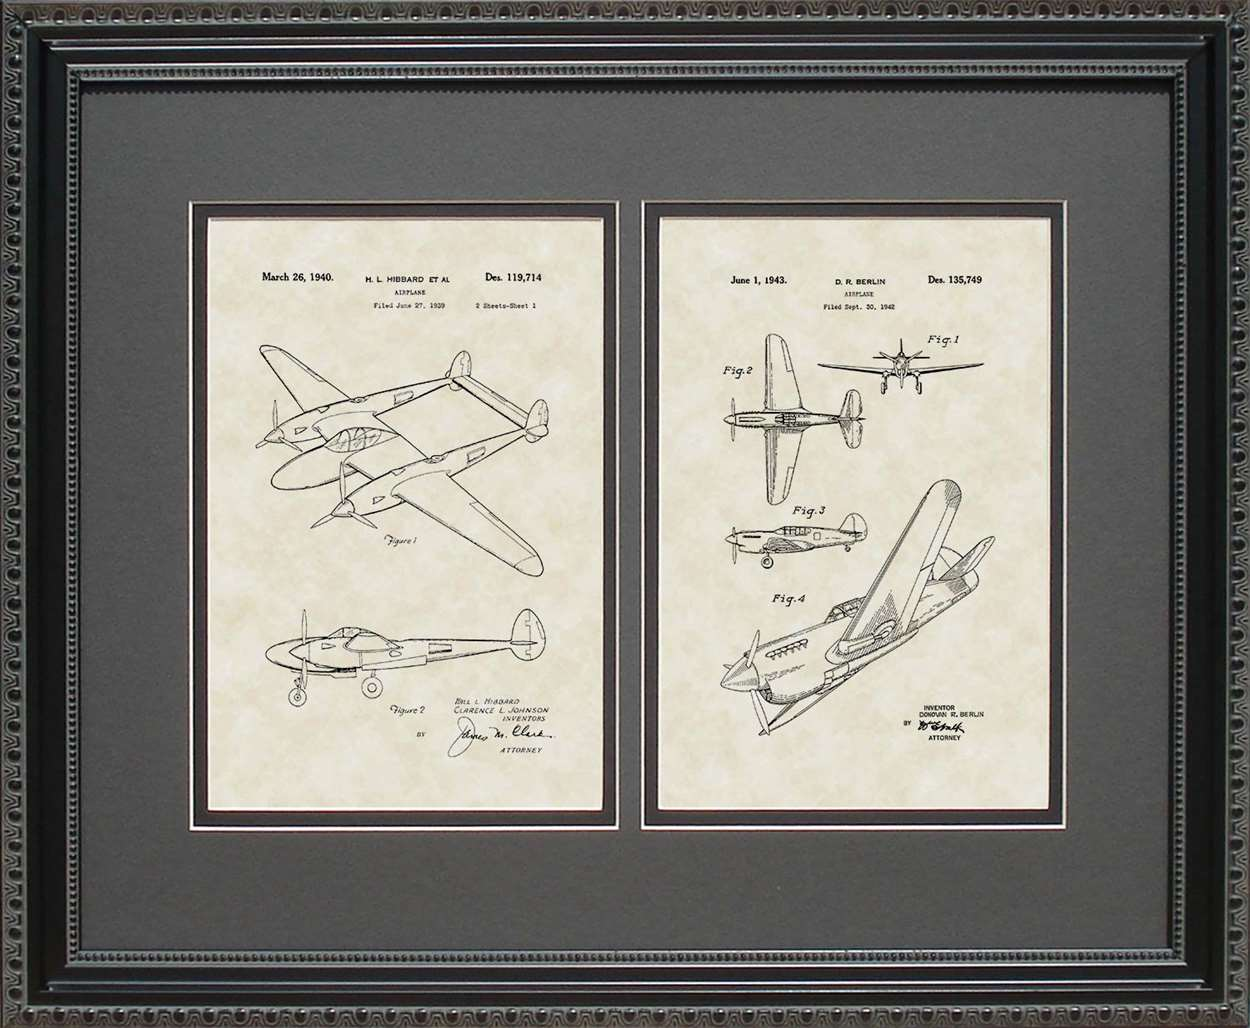 P-38 & P-41 Patents, 16x20